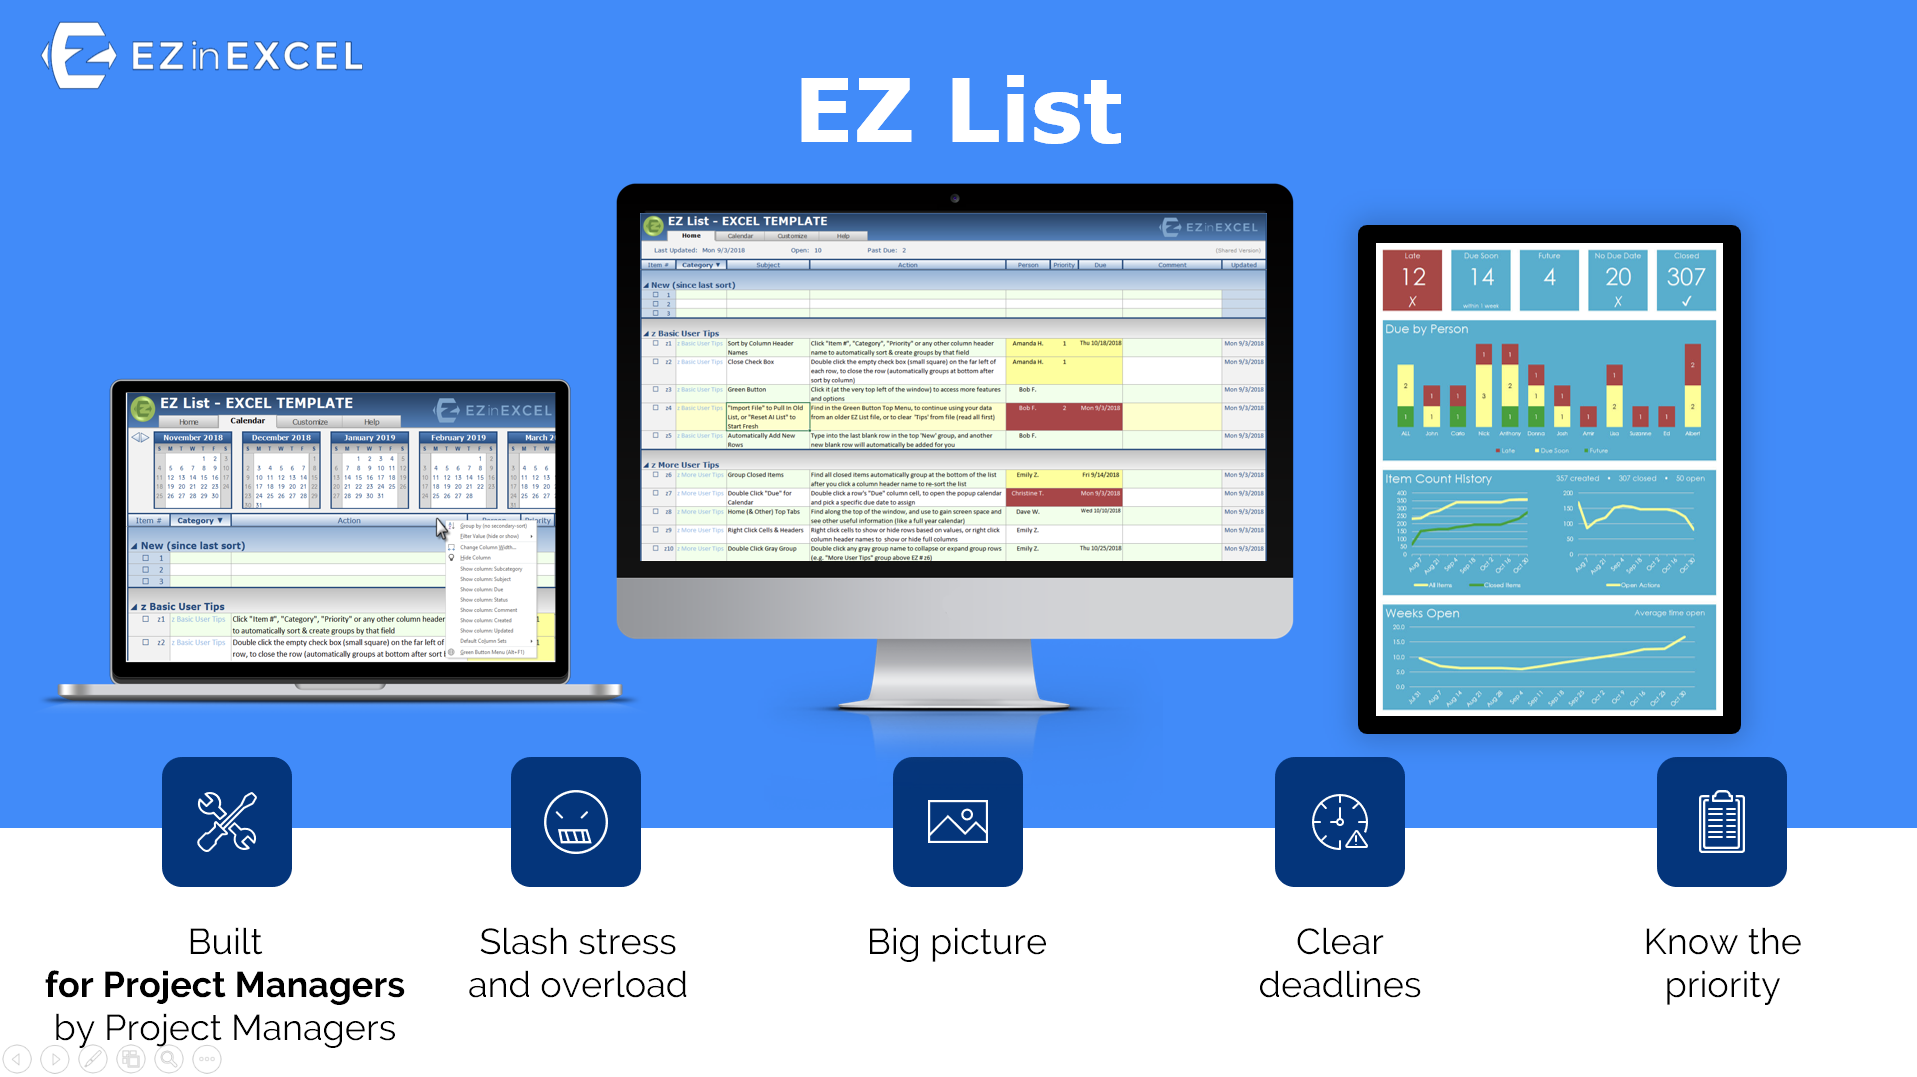 EZ List - Presenting the new easy list by EZ in Excel